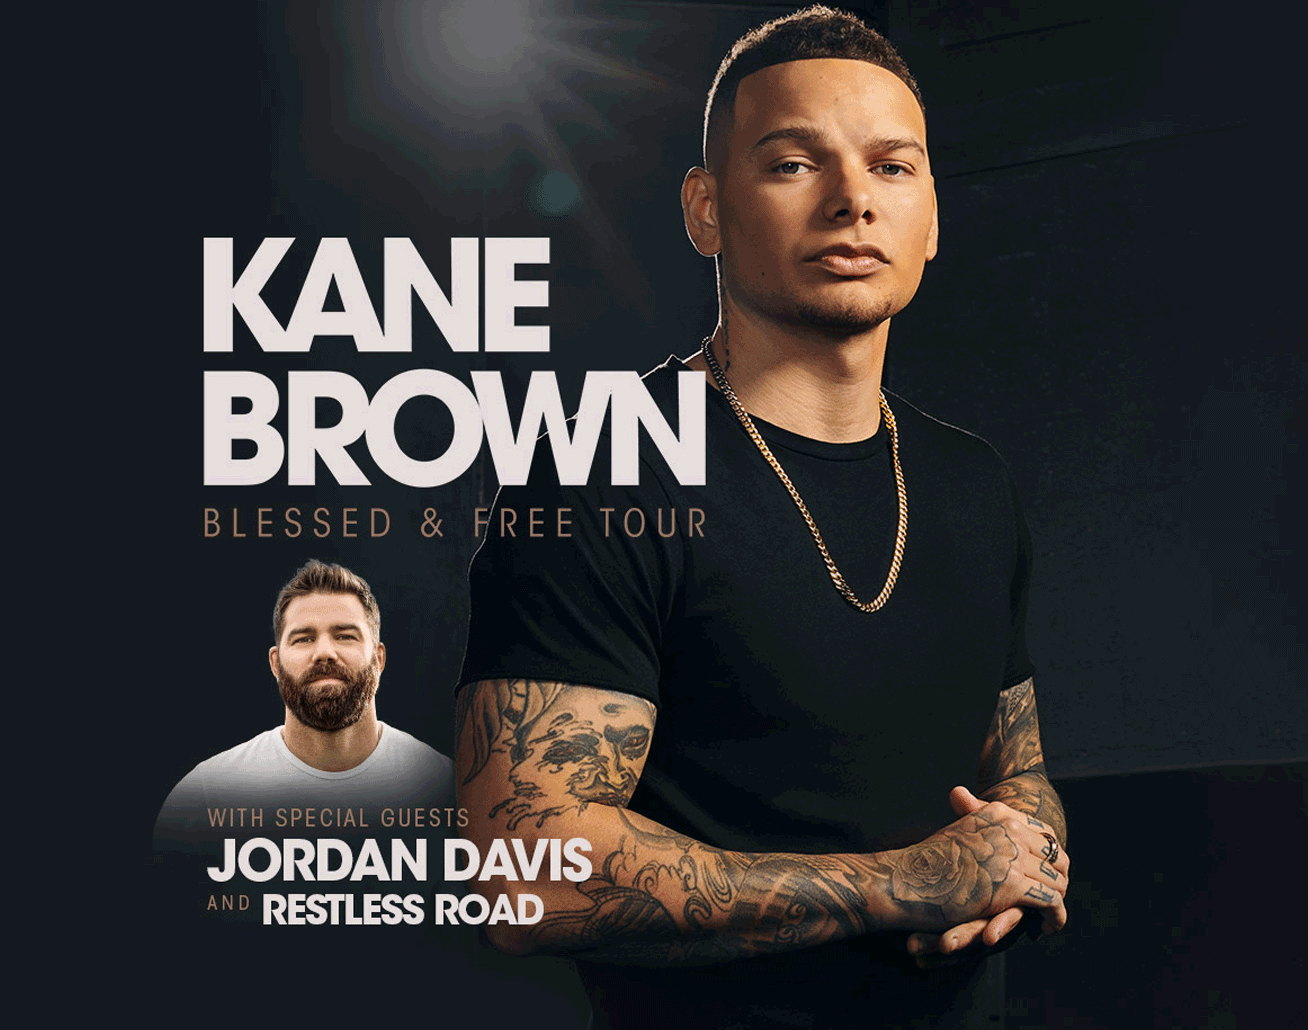 Kane Brown at Bryce Jordan Center on November 6, 2021